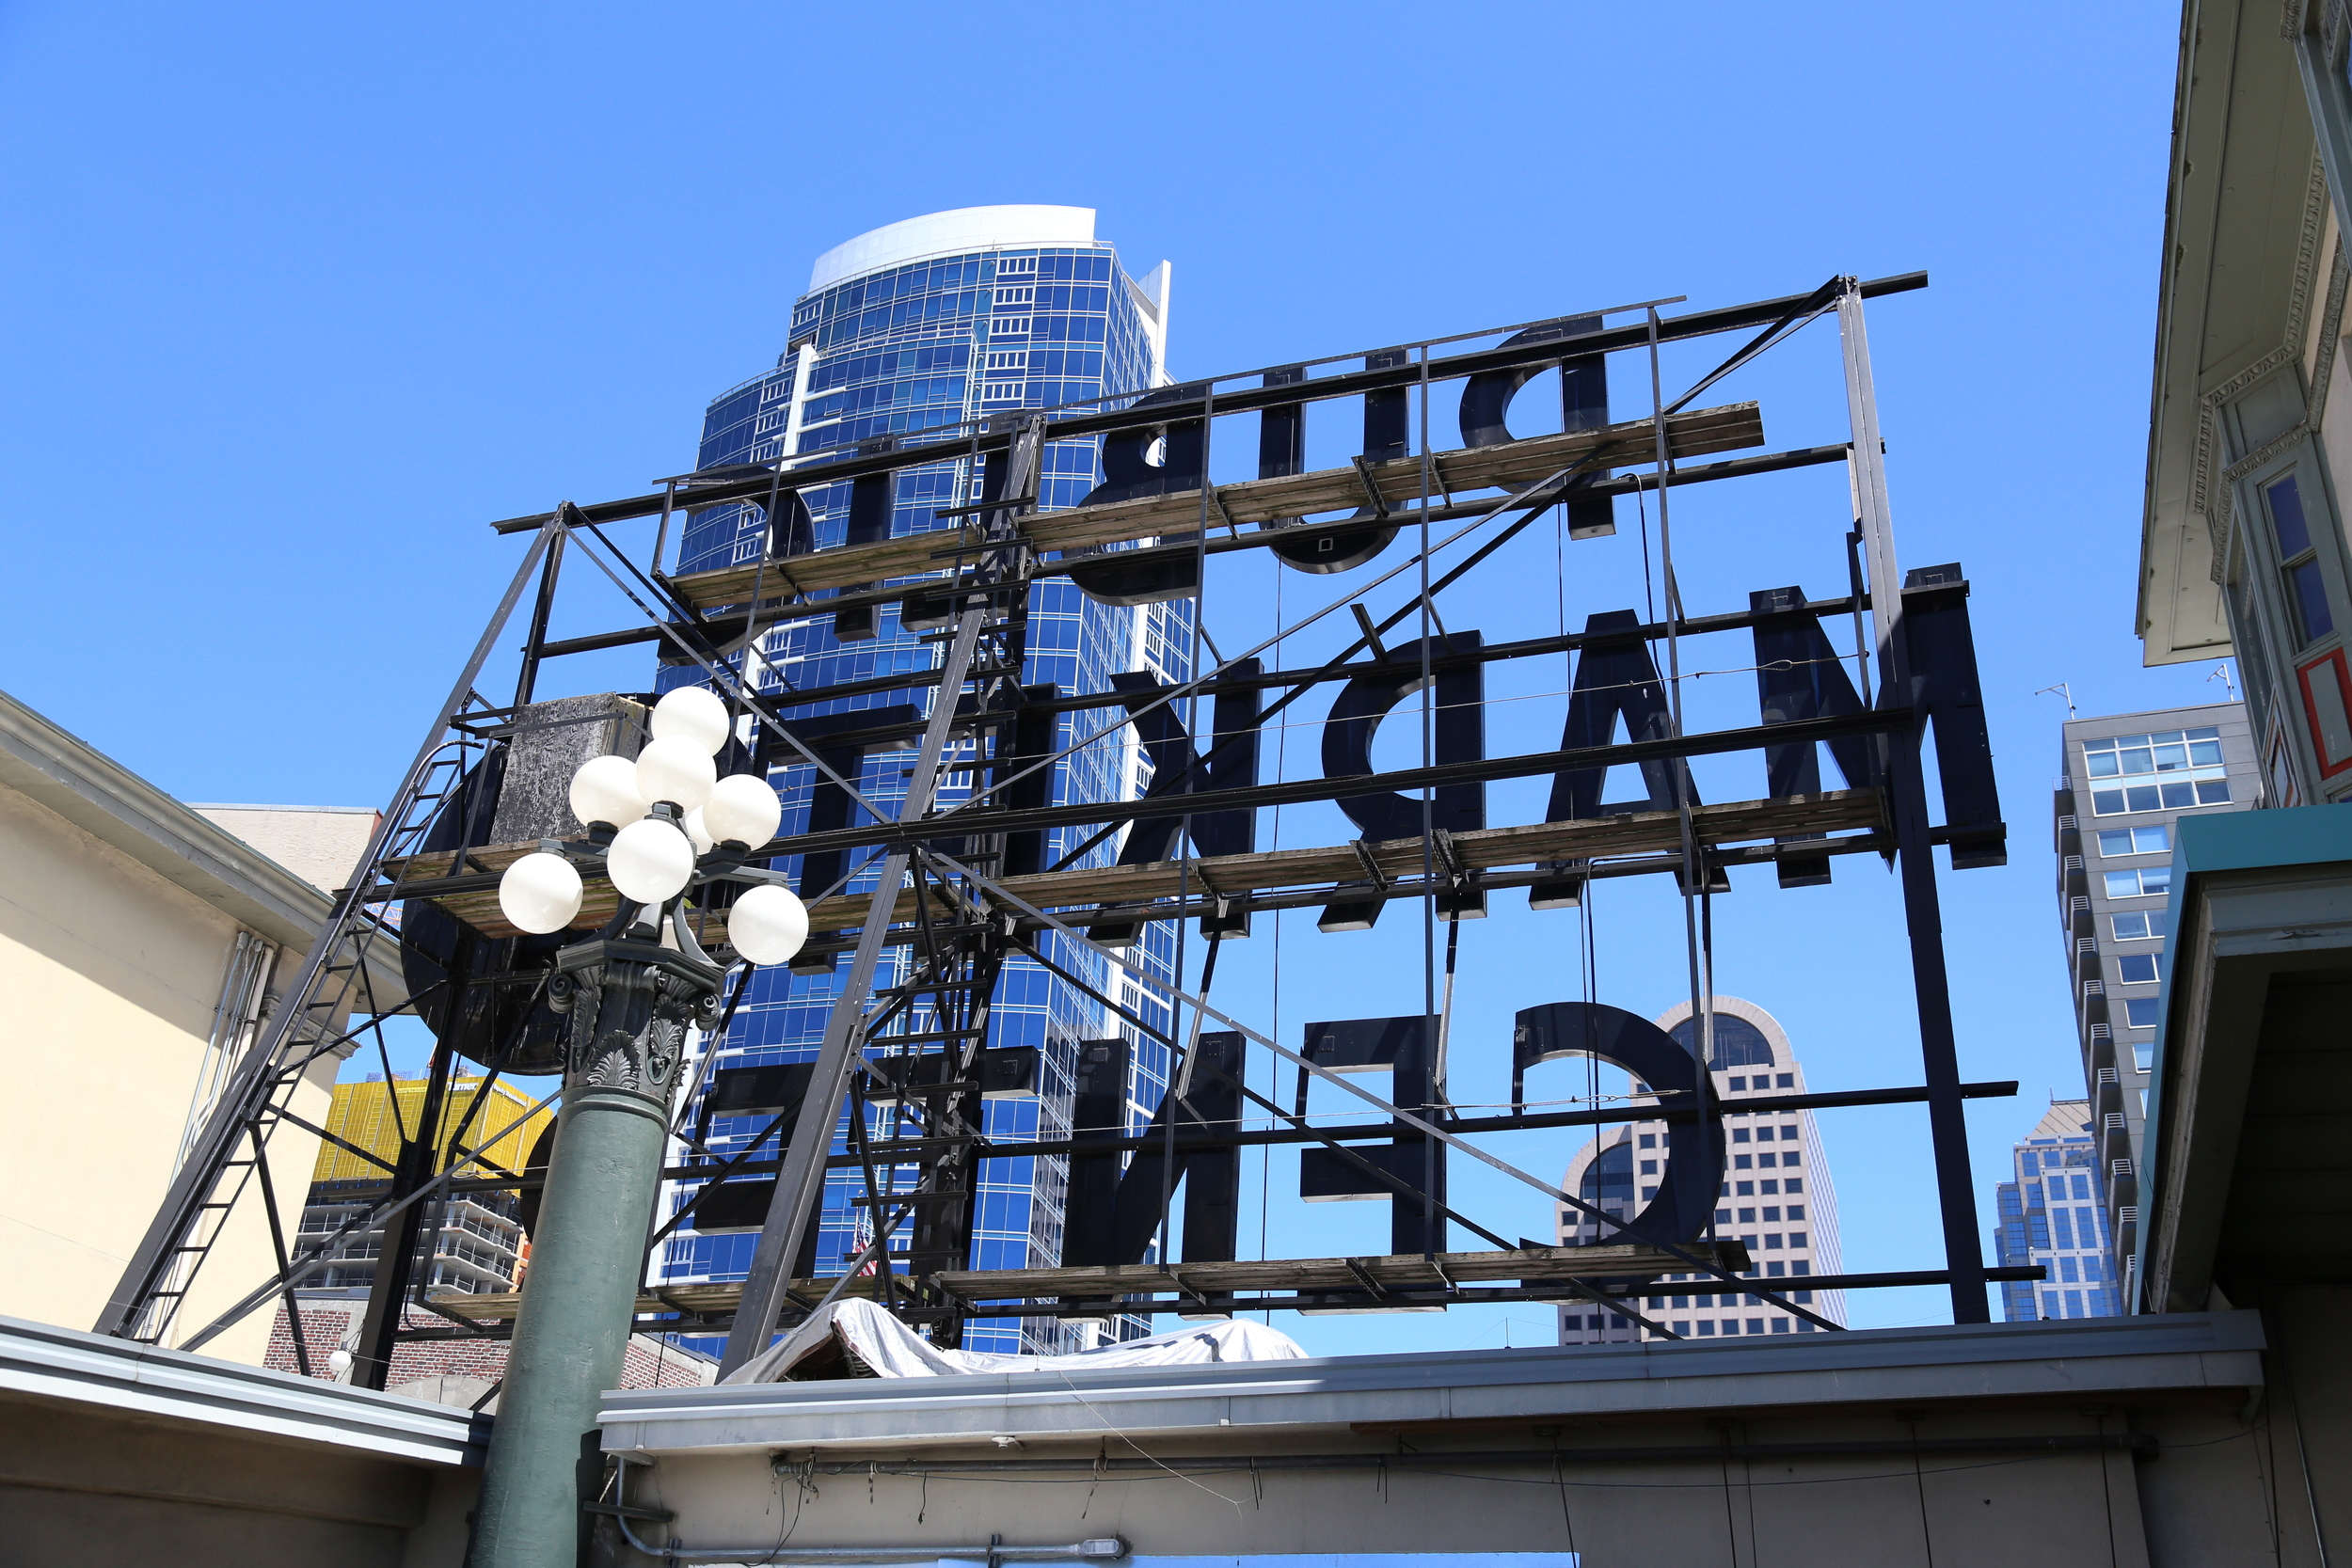 The literal backside of the famous Public Market sign.